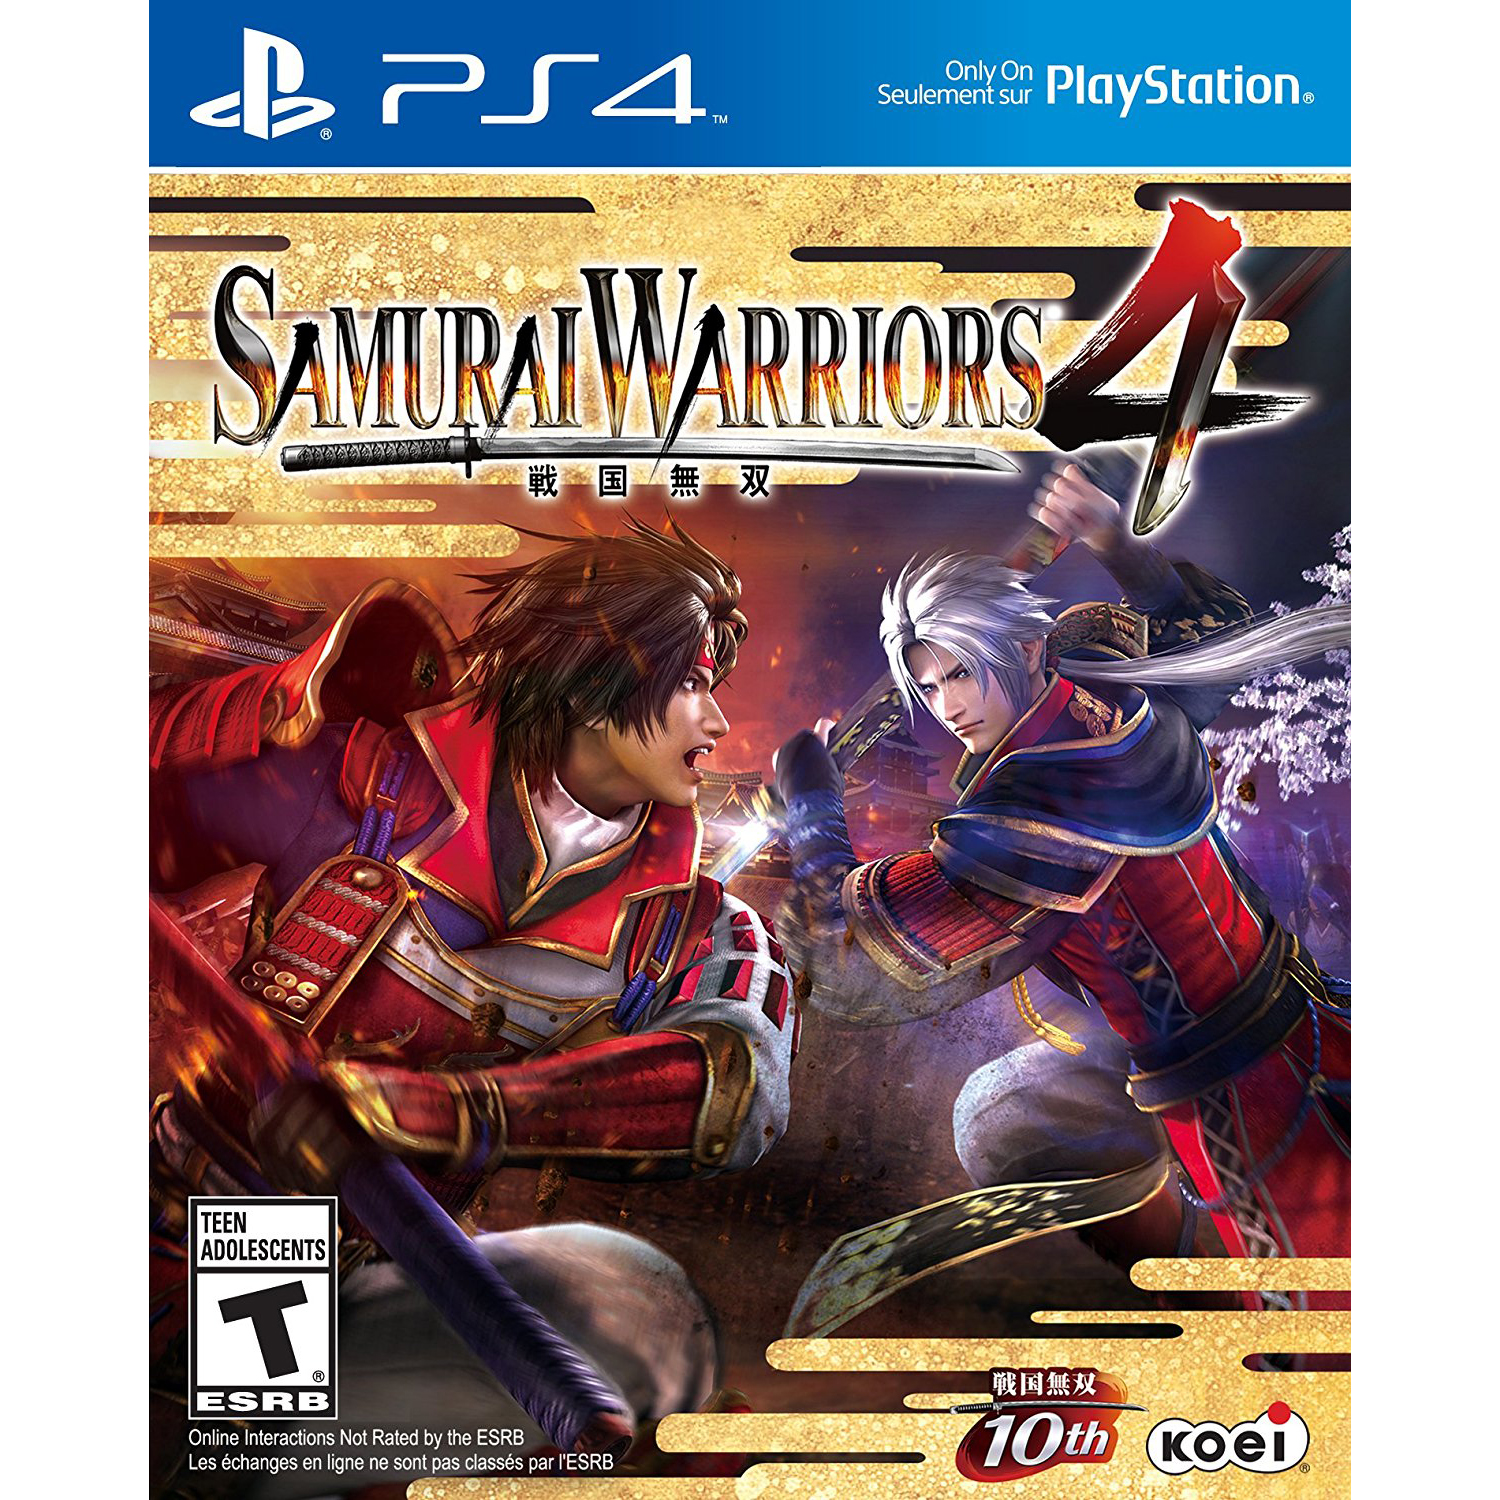 Sony PlayStation 4 Samurai Warriors 4 Video Game